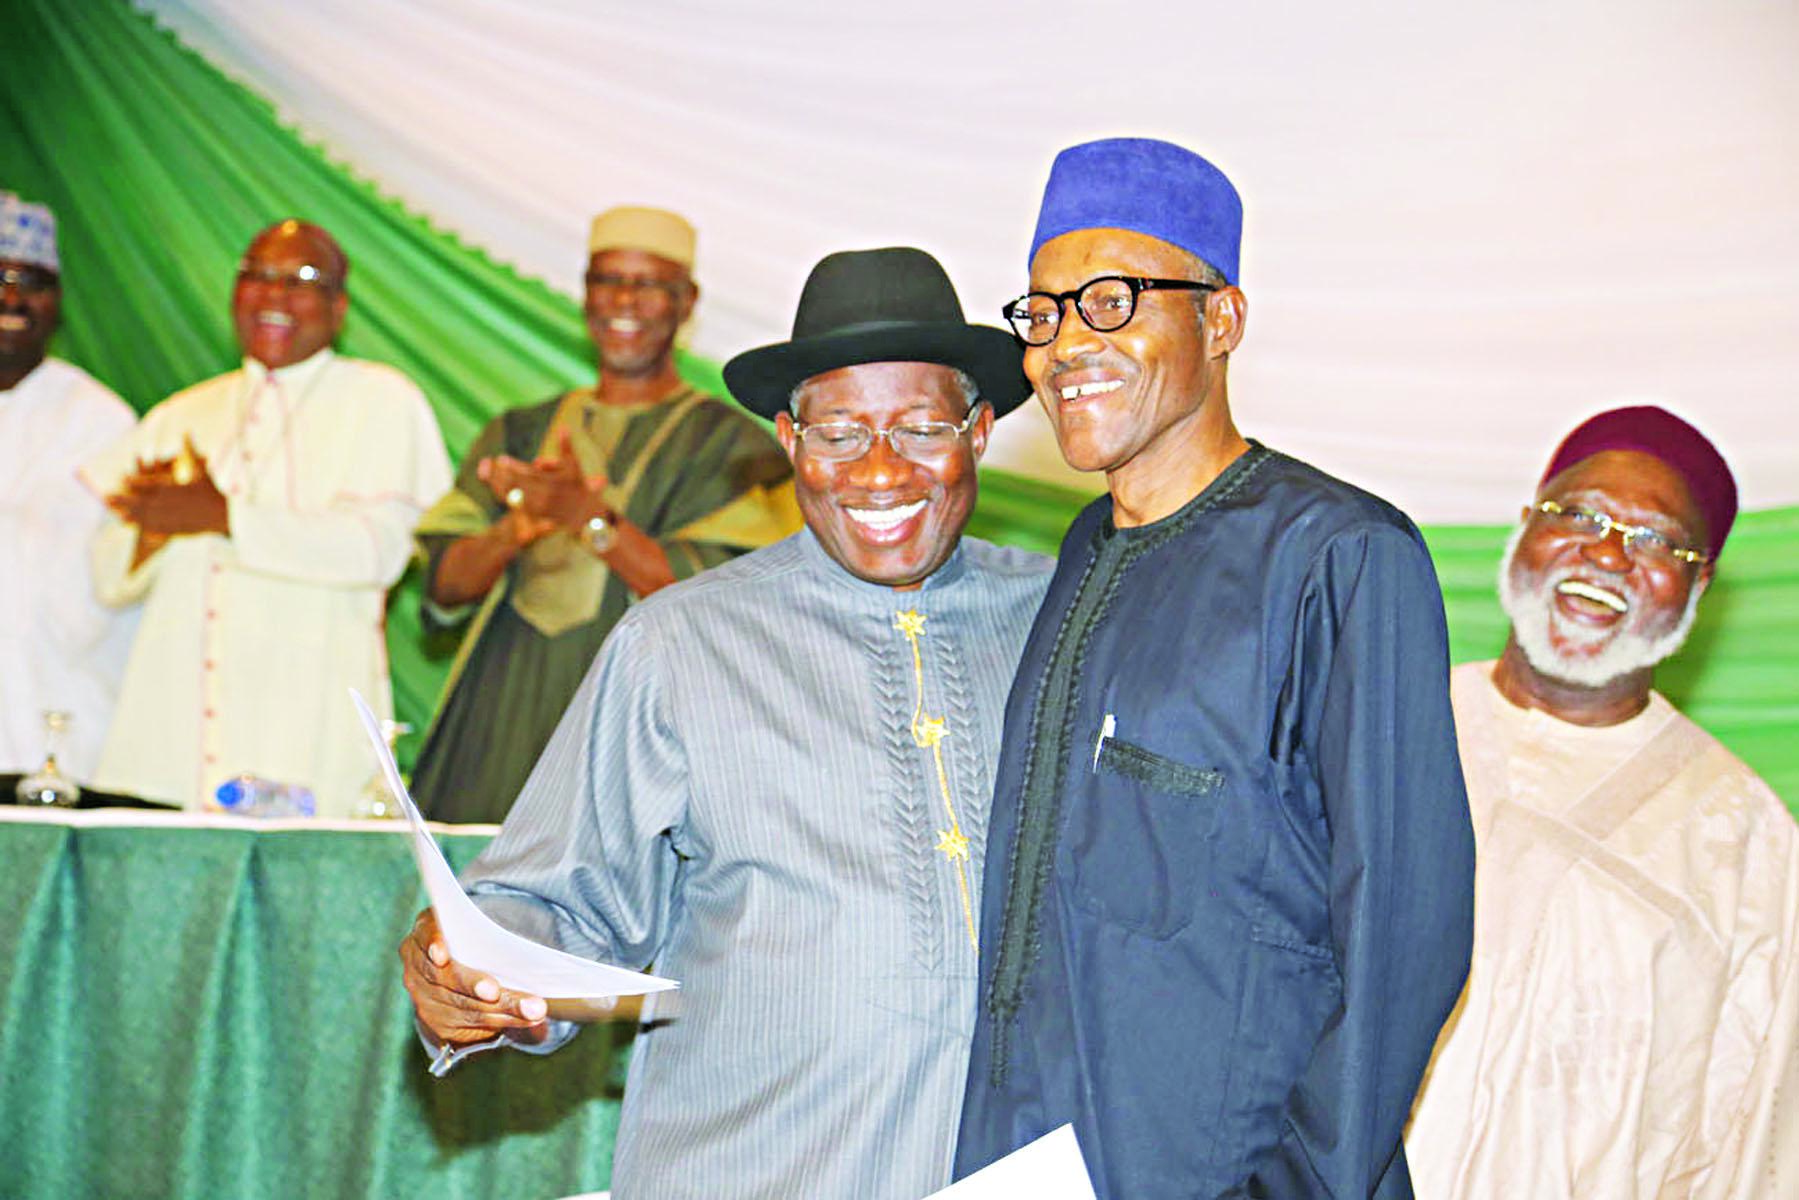 President Goodluck Jonathan and APC presidential candidate, Major-Gen. Muhammadu Buhari (rtd), after signing the renewal of a peace accord in Abuja …yesterday.